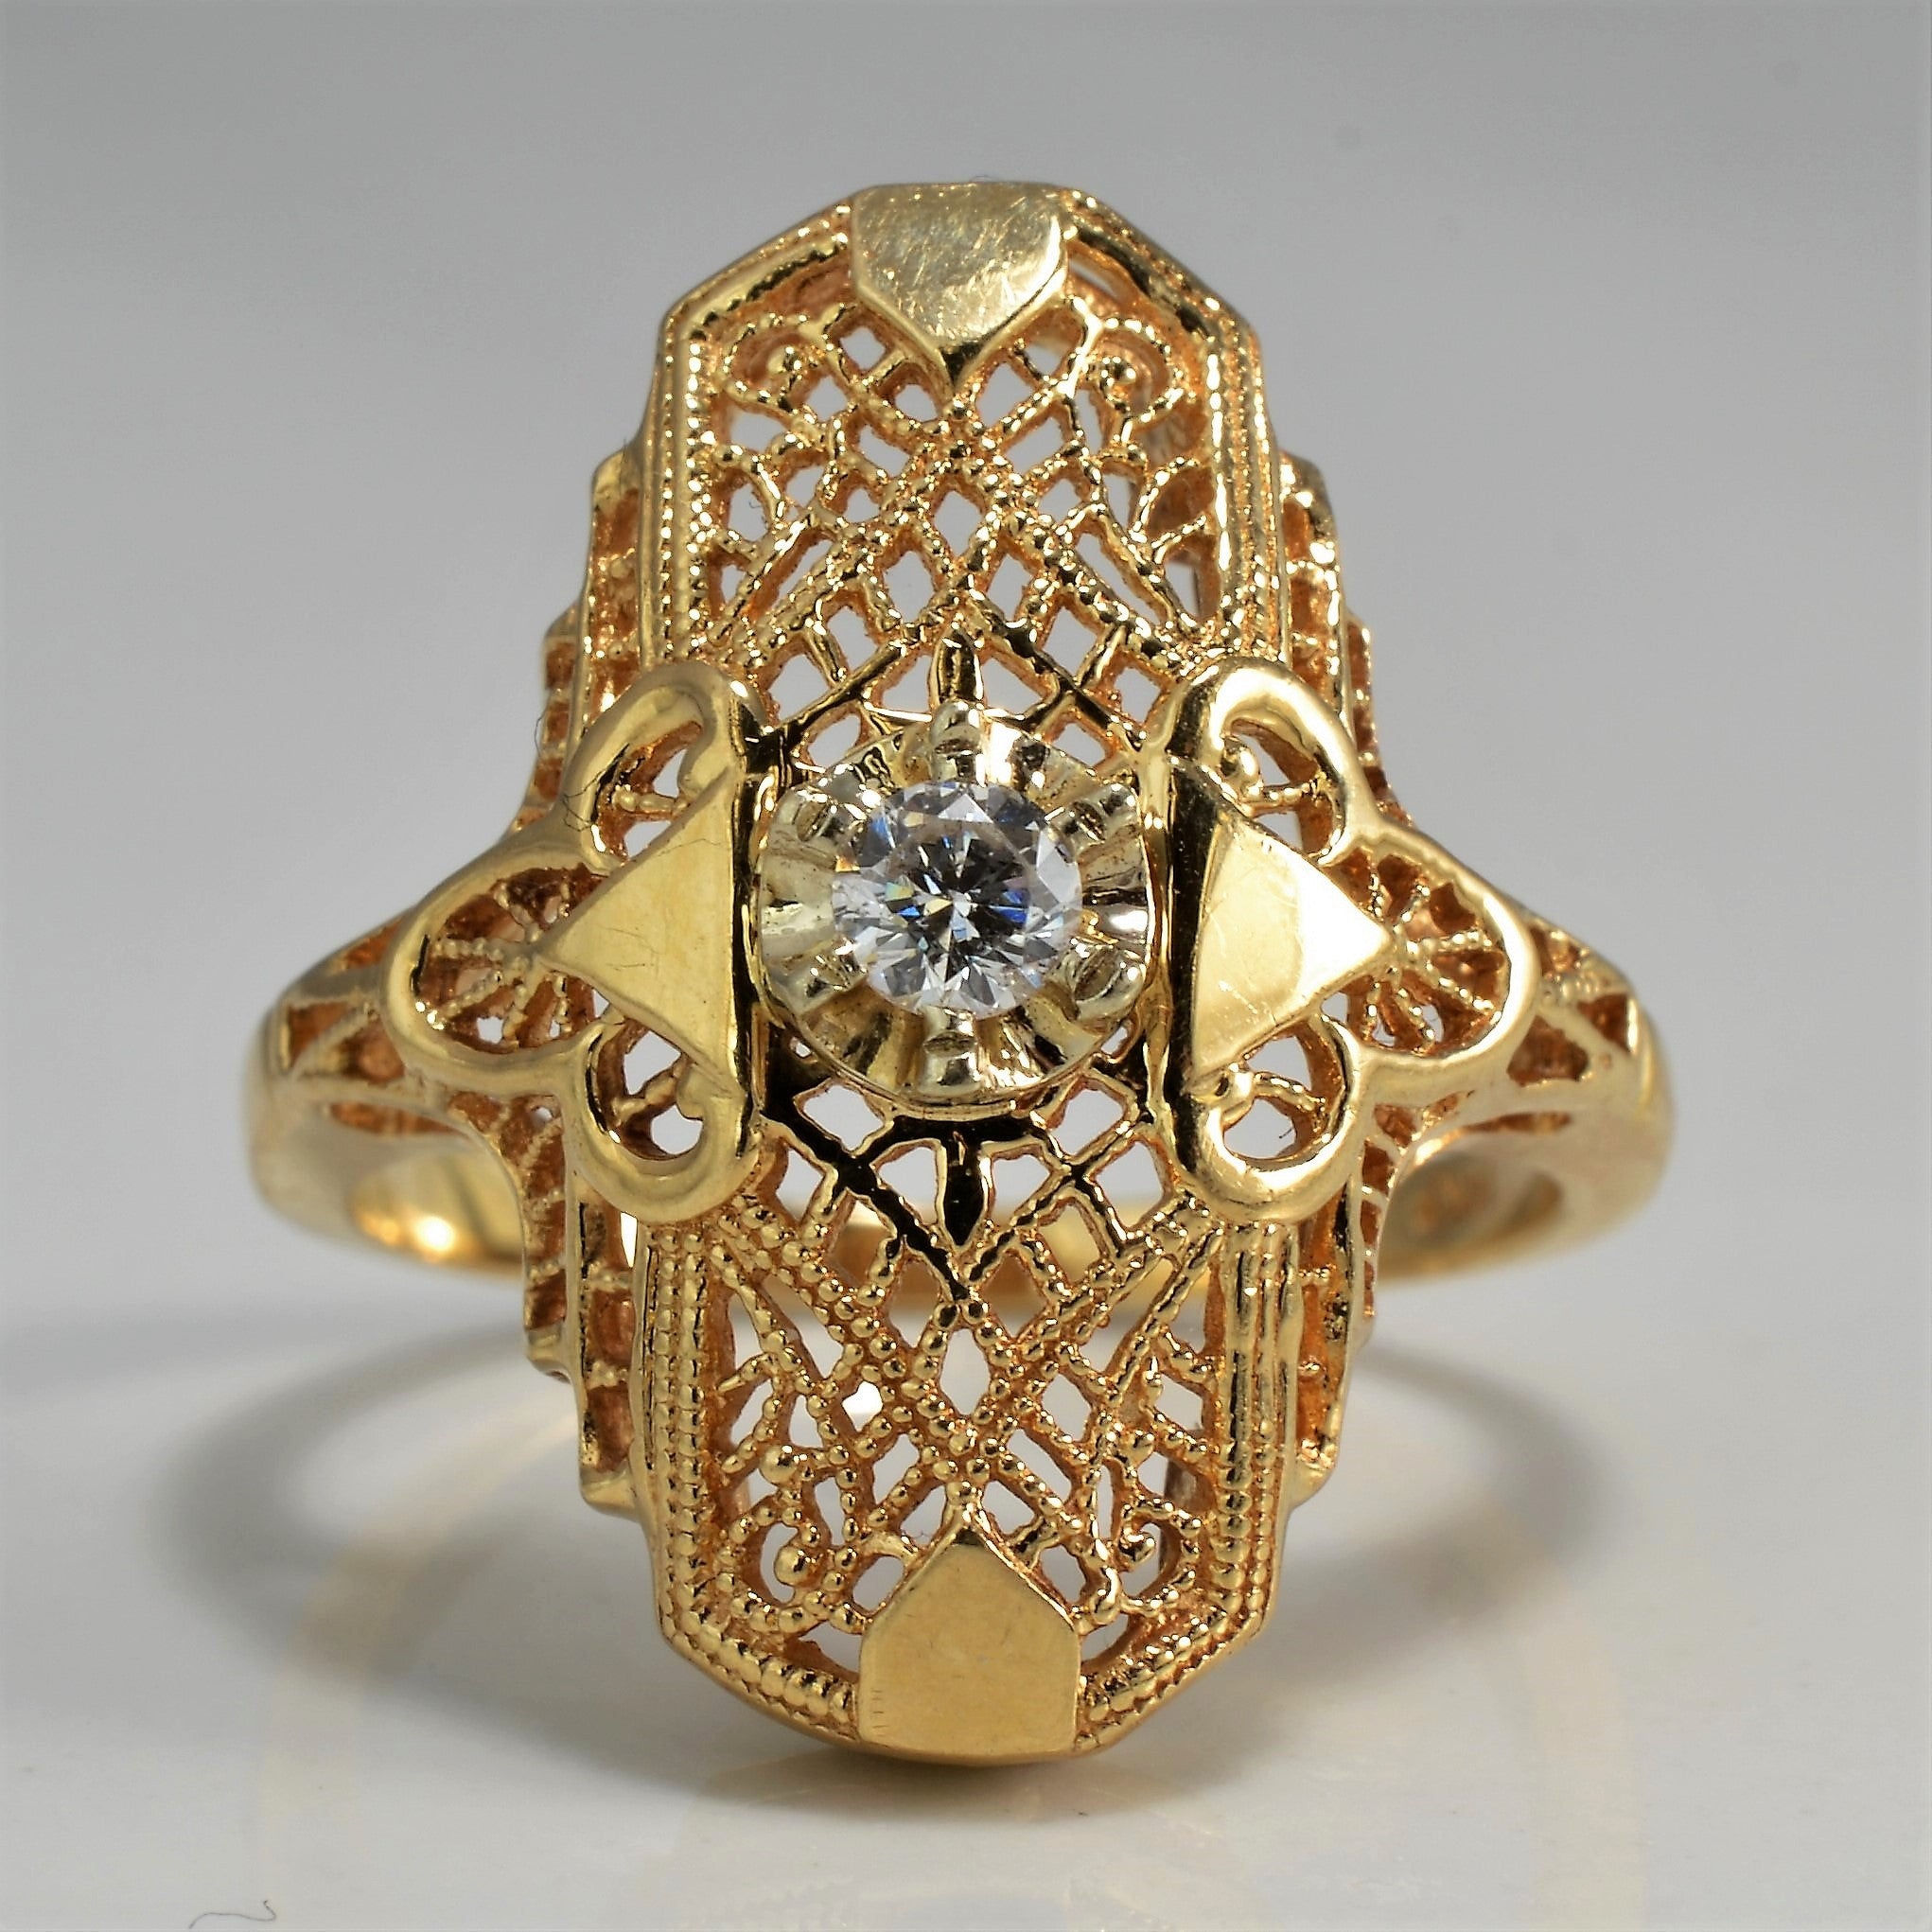 Beautiful Art Deco Filigree Diamond Ring | 0.10 ct, SZ 6.75 |